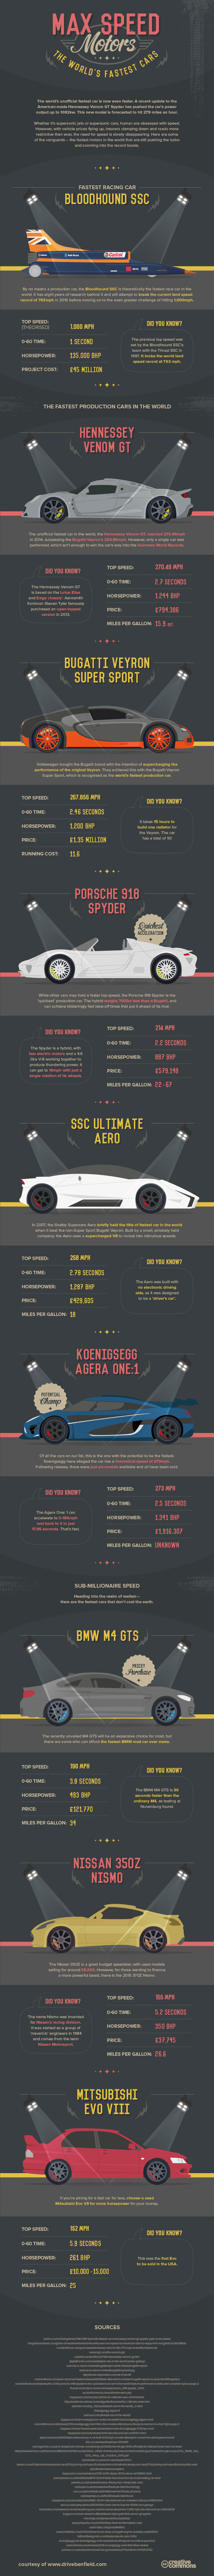 The Fastest Supercars